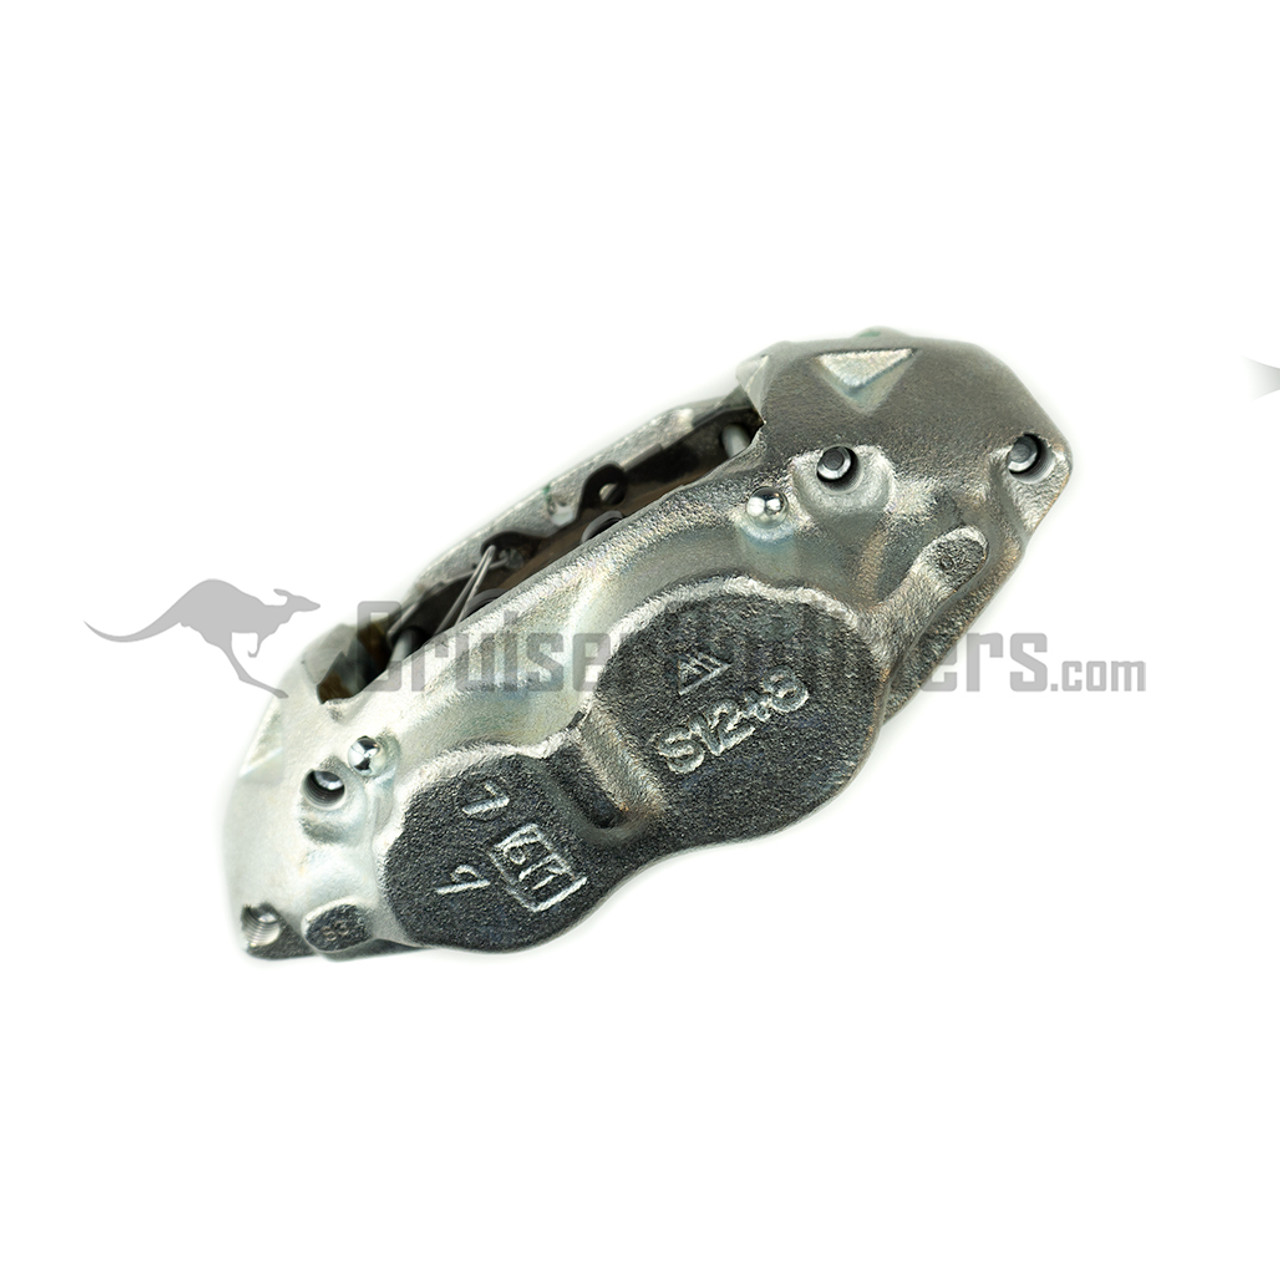 BRC60021LOAD - Front Loaded Caliper Set - Fits 9/1975-1/1990 4x/5x/6x/7x with Factory Front Disc Brakes